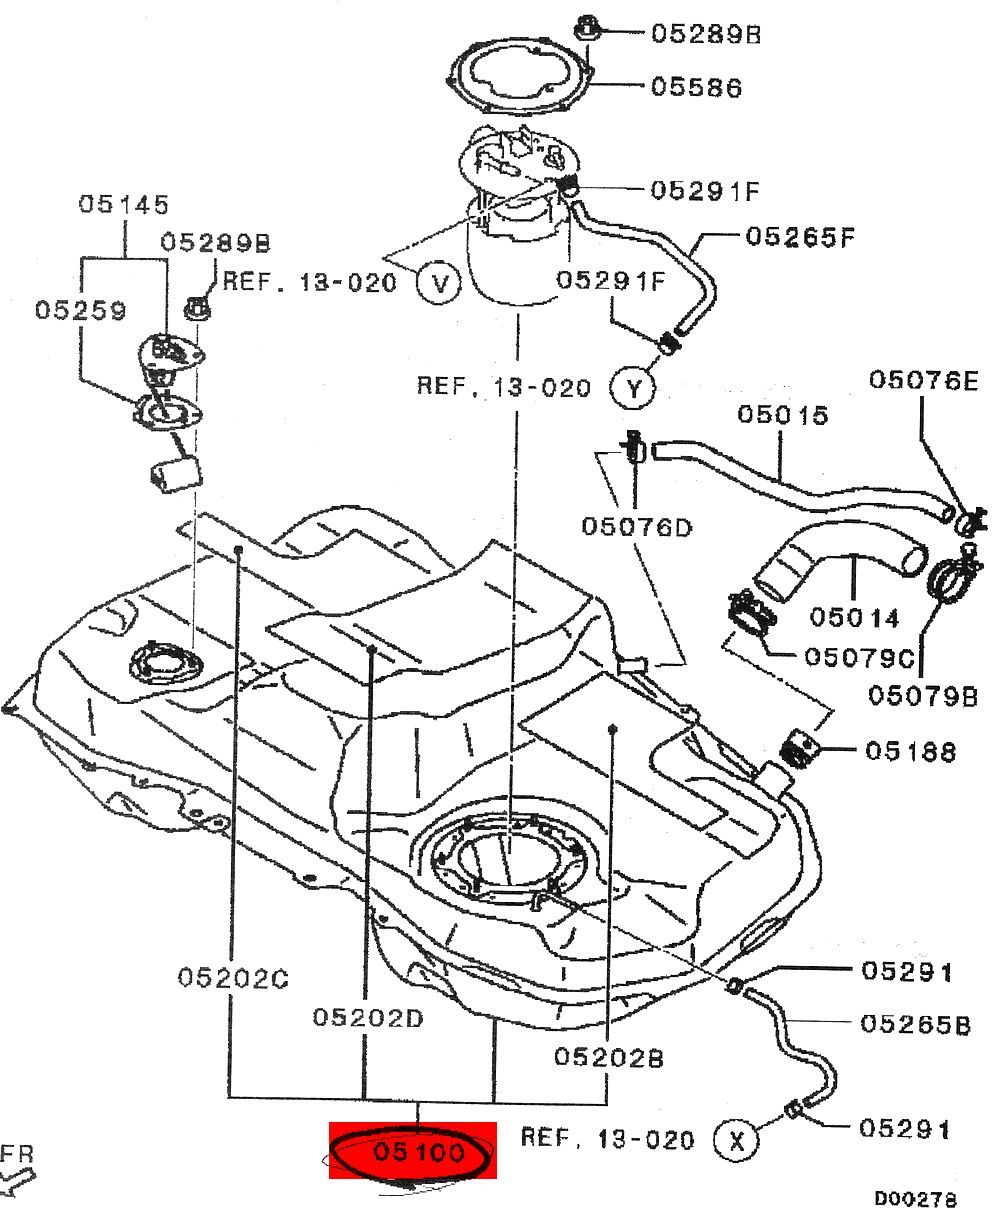 Chevy Venture Van Wiring Diagram moreover 7zf0q Mitsubishi Eclipse Install Blower Motor Resi as well Discussion T8060 ds565263 as well 2004 Mitsubishi Endeavor Parts Catalog furthermore 2006 Mitsubishi Endeavor Exhaust Diagram. on 2004 mitsubishi endeavor electrical problems